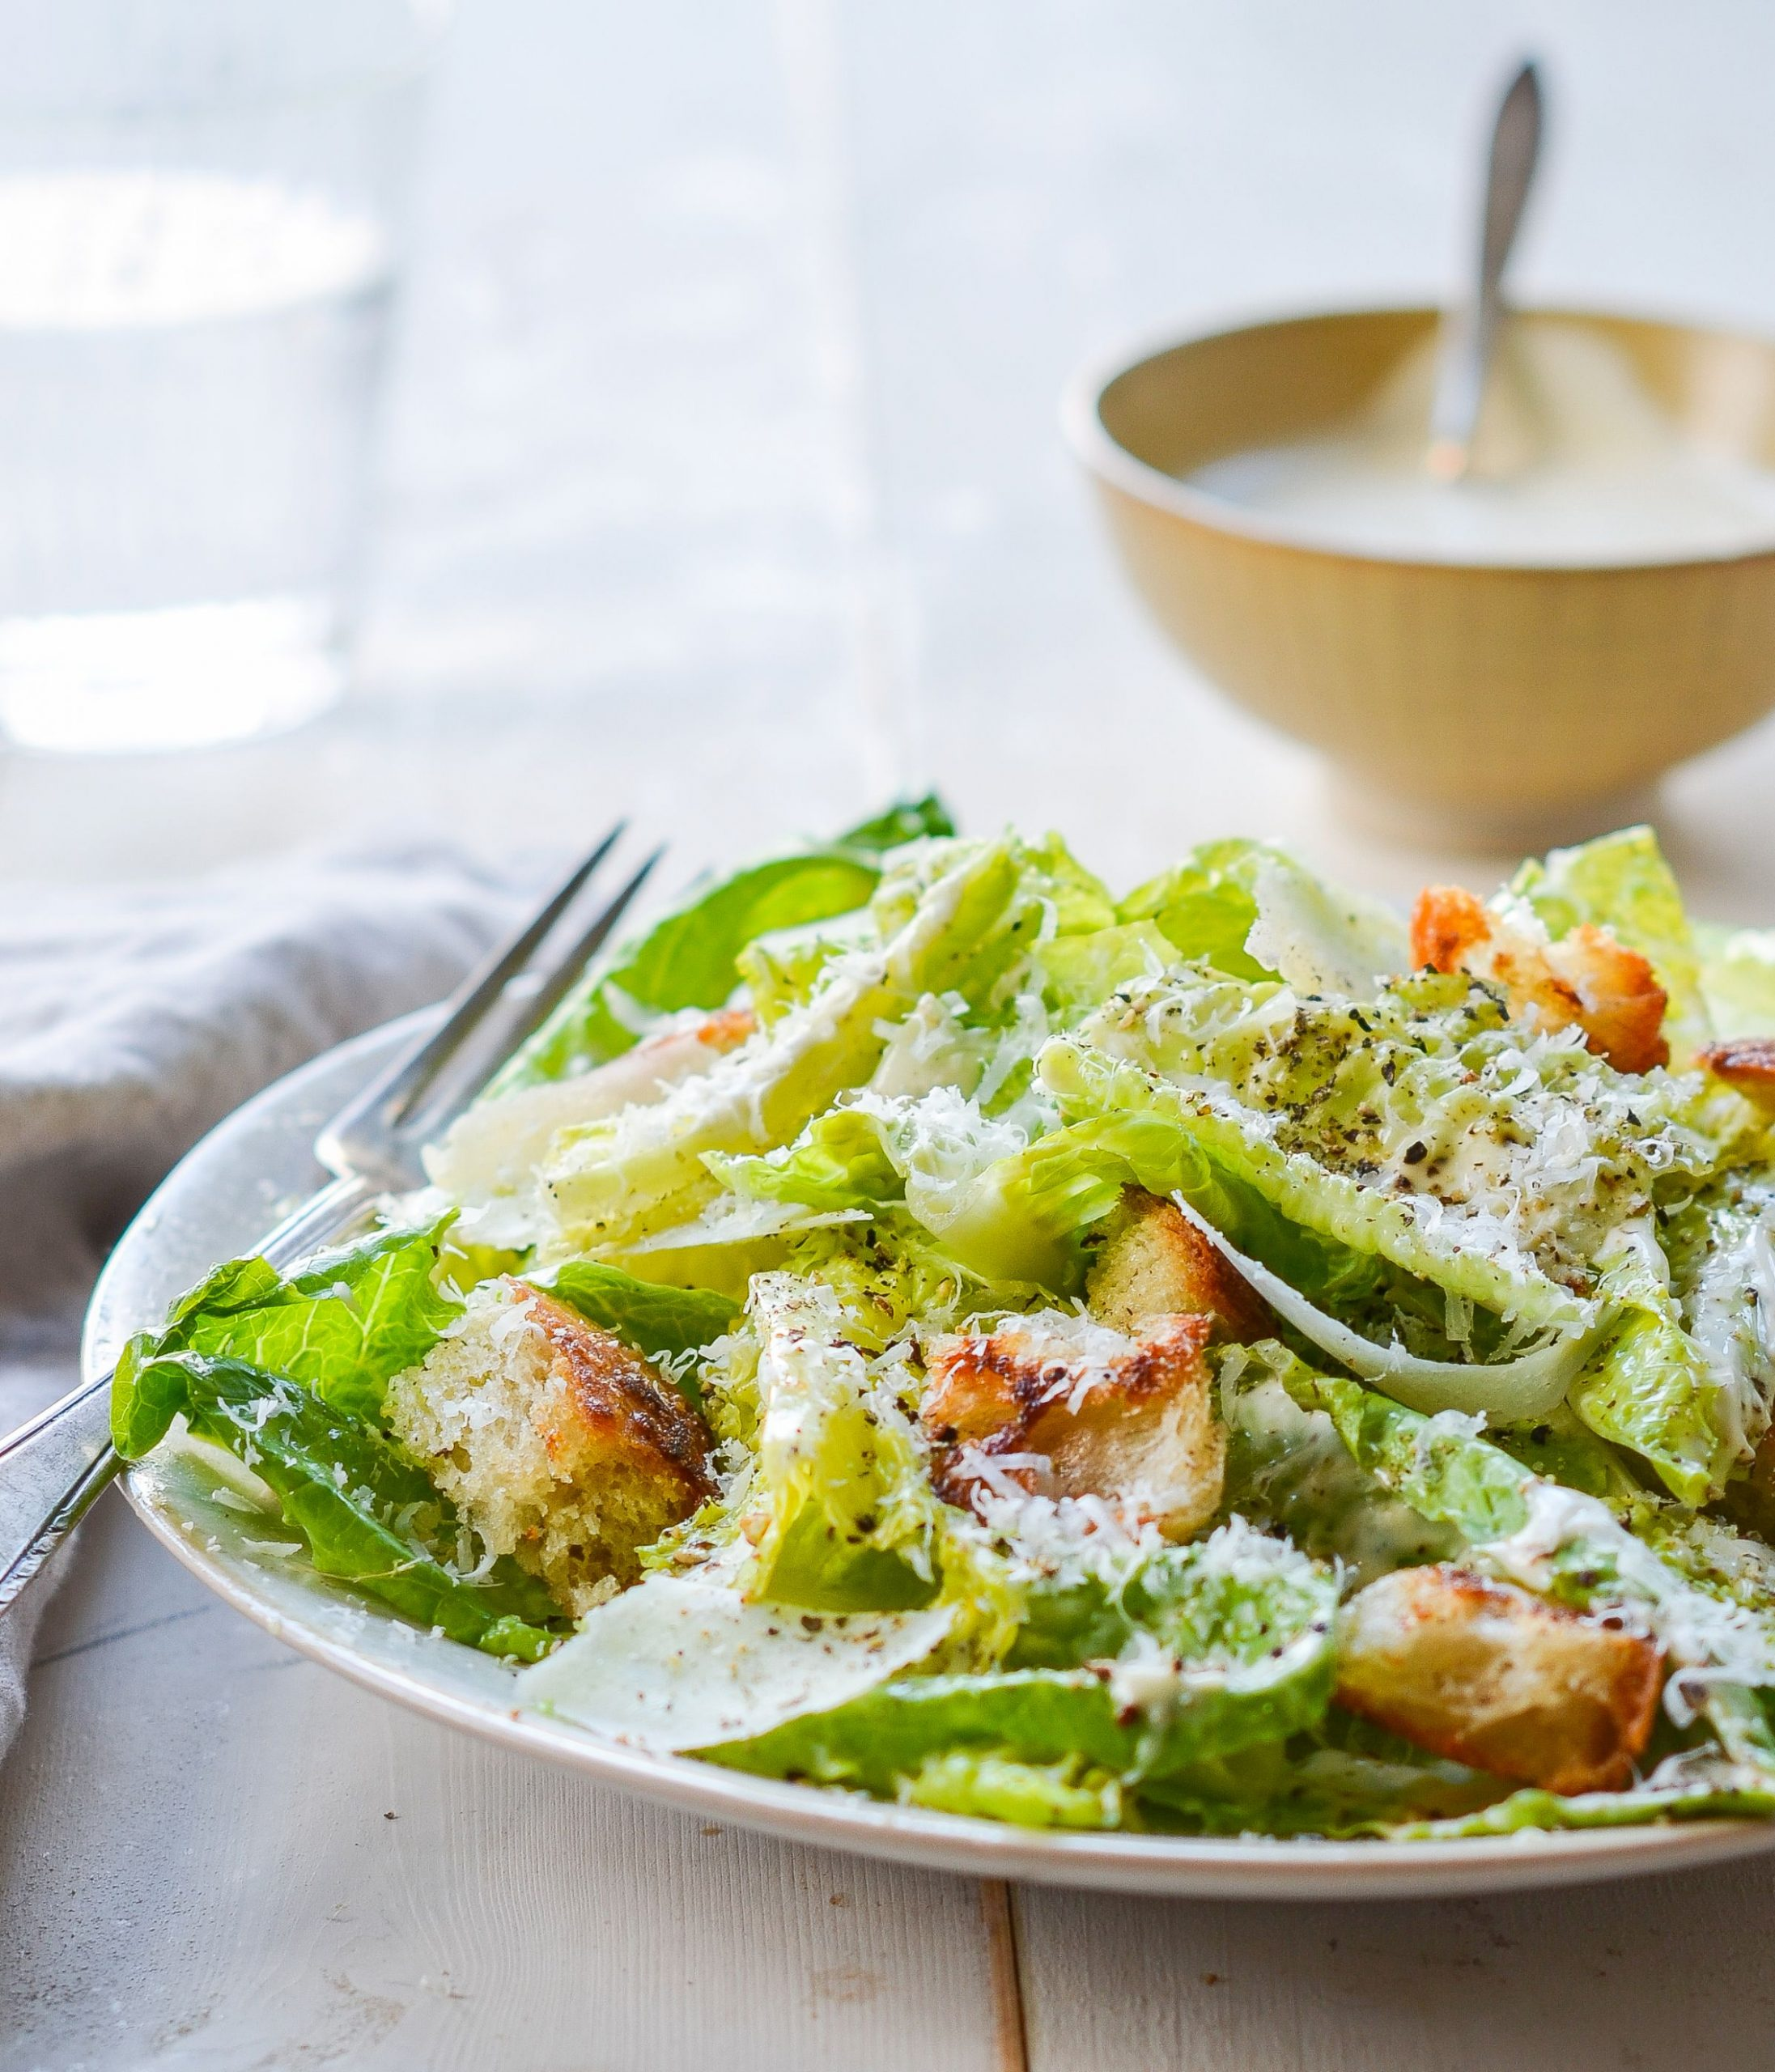 Homemade Caesar Salad Dressing - Salad Recipes And Dressings